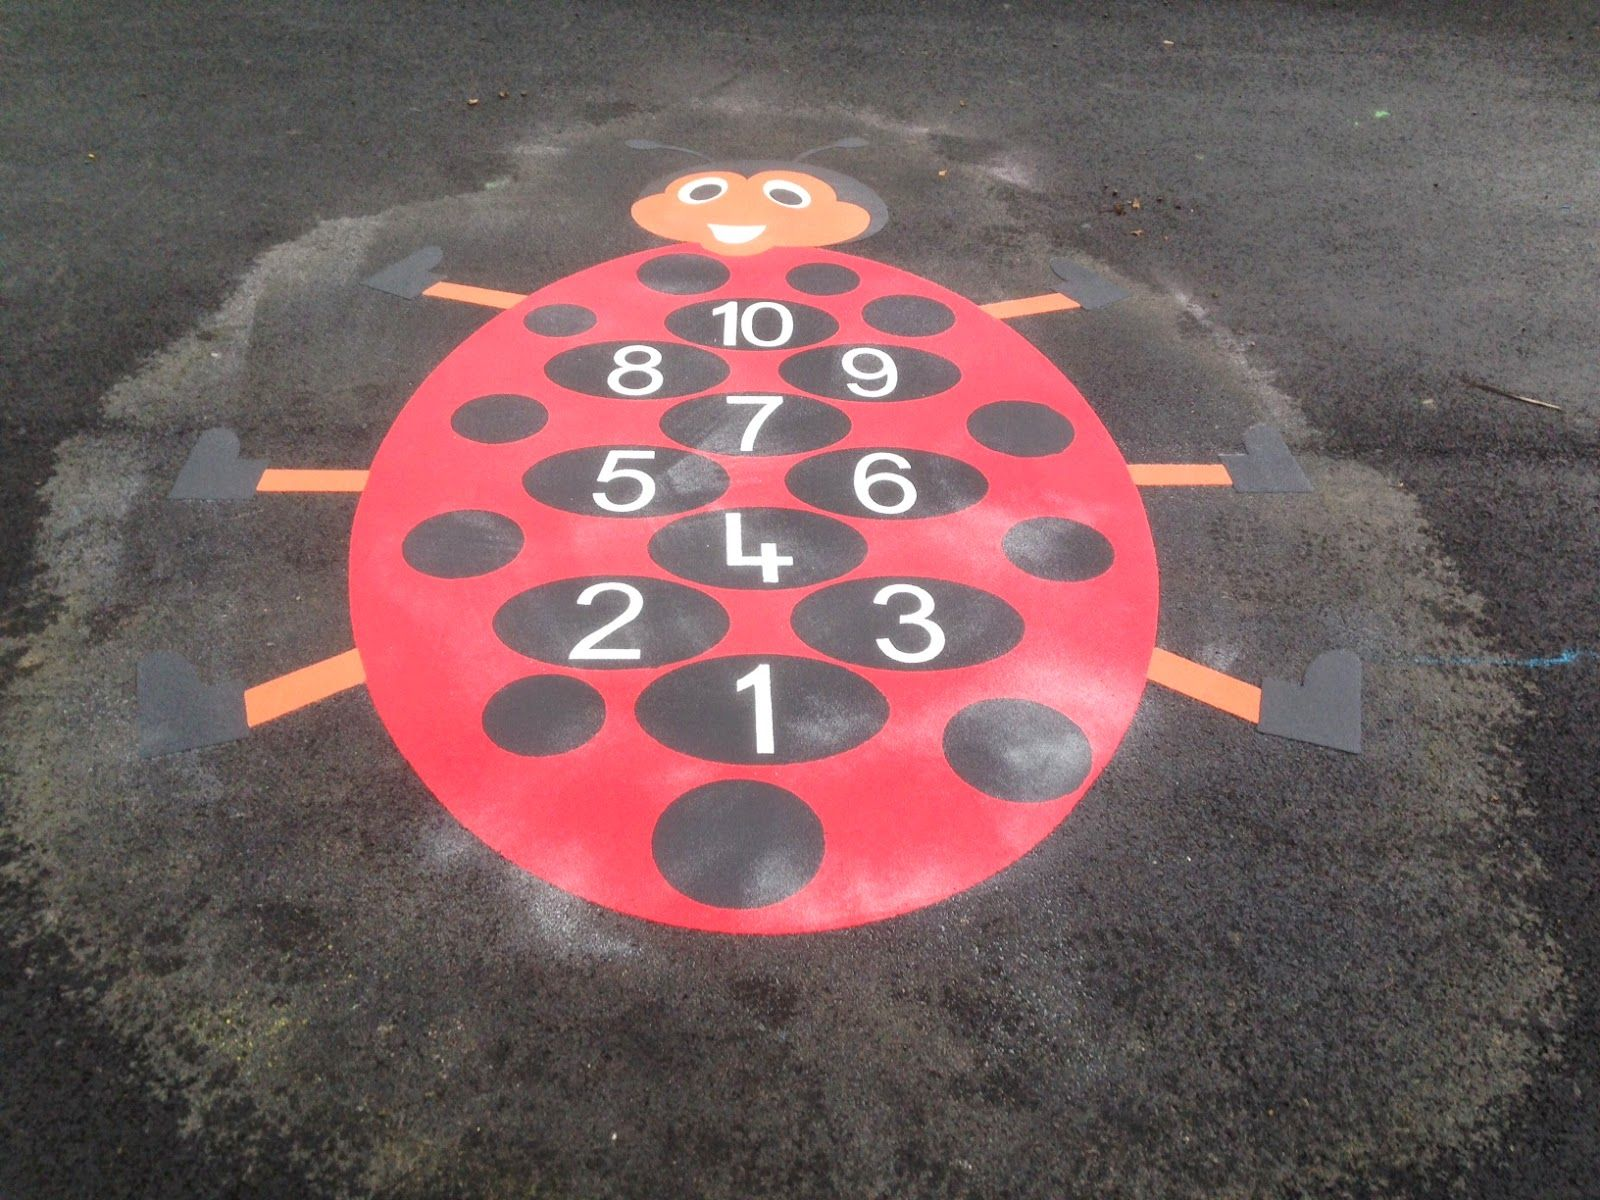 ladybird playground marking installed at paradykes primary school in Edinburgh - Parque infantil, Atividades para educação infantil, Artesanato escolar - 웹